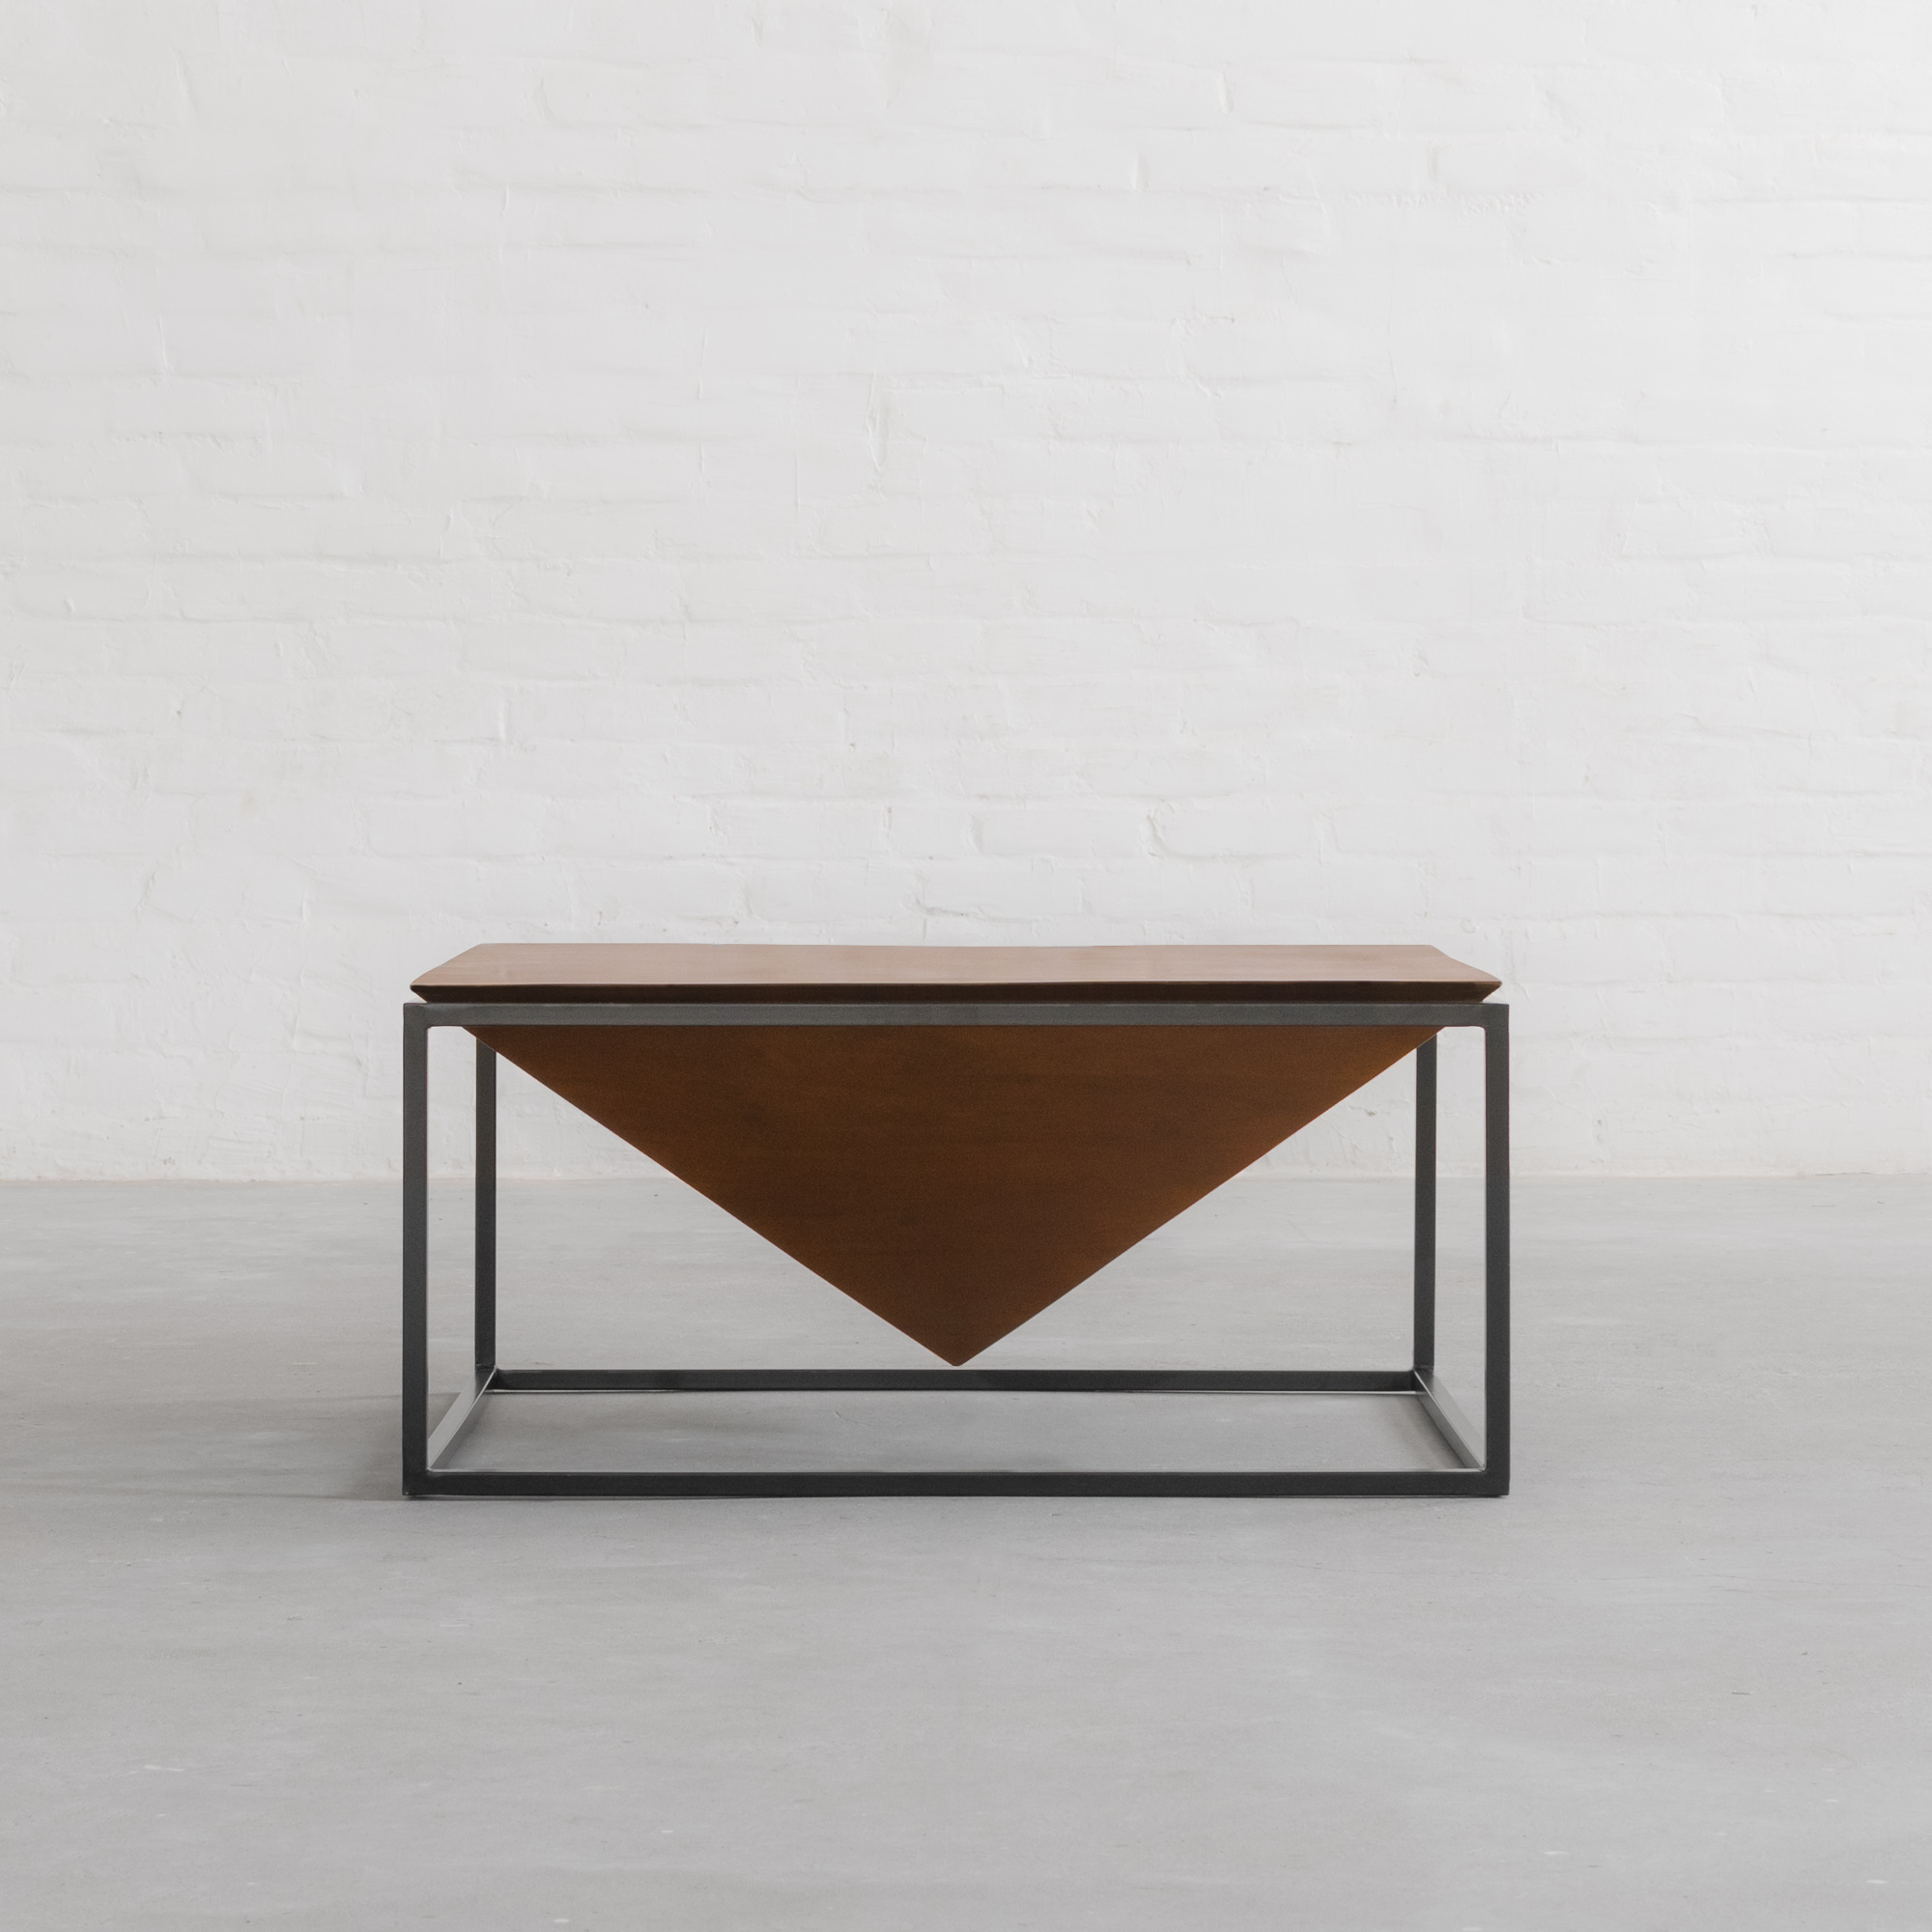 Fashionable Louvre Coffee Table Inside Inverted Triangle Coffee Tables (View 2 of 20)